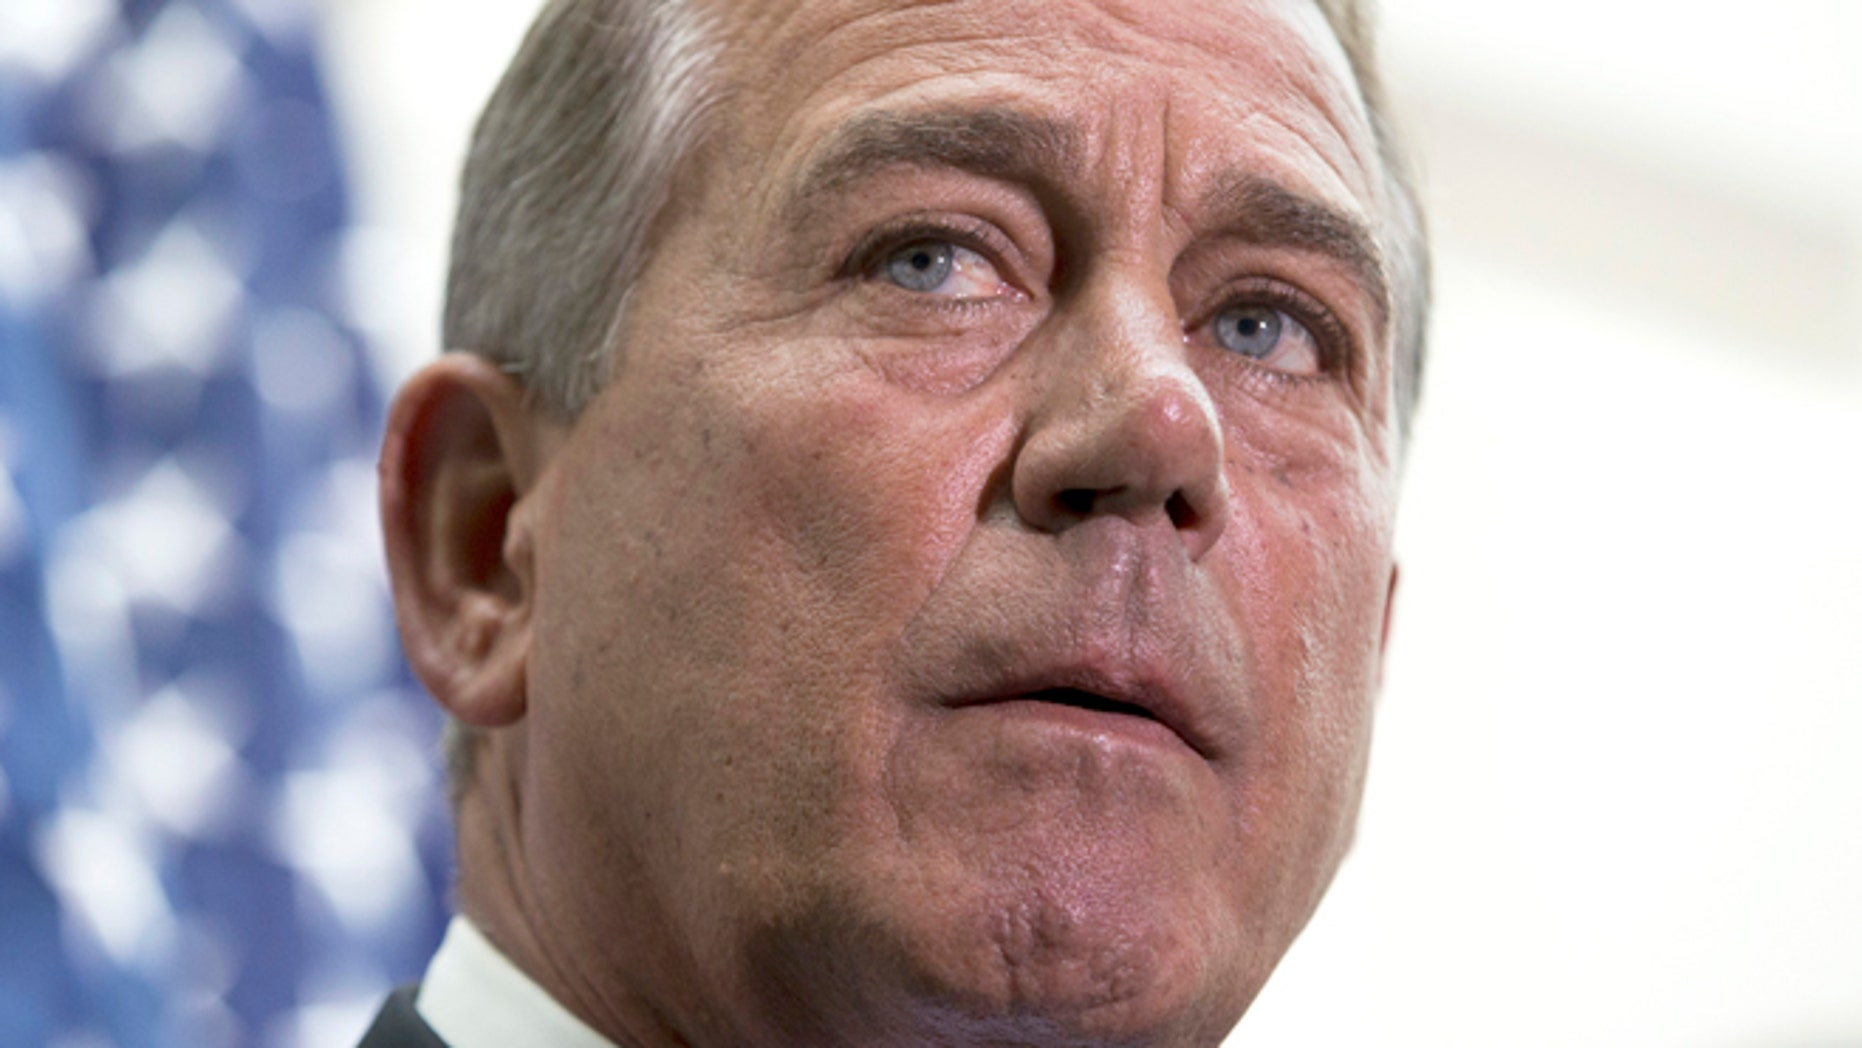 July 9, 2014: House Speaker John Boehner participates in a news conference on Capitol Hill.